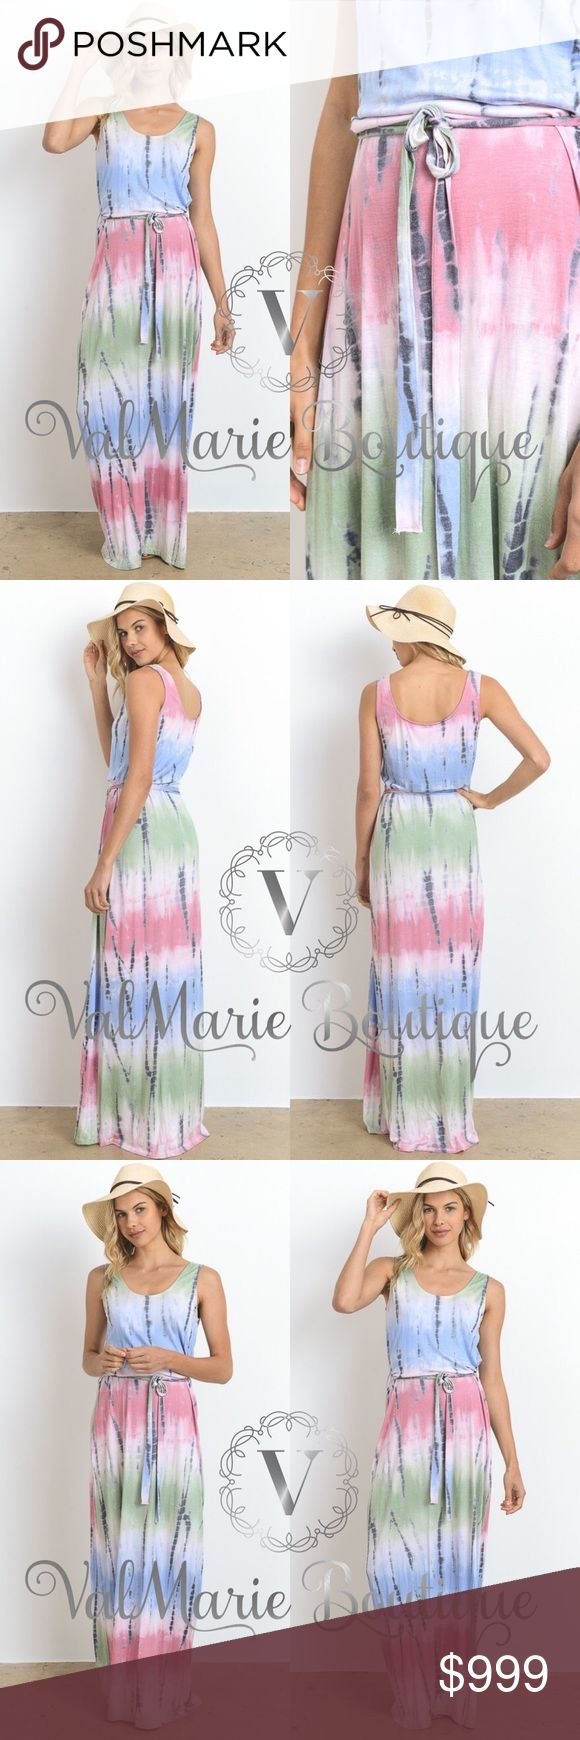 COMING SOON - PASTEL TIE DYE MAXI DRESS 🇺🇸MADE IN USA- this stunning tie dye maxi dress is one of a kind and so comfortable! Features long bodice and tie waist. Limited quantities available so get them fast. This item was pricey due to Made on USA costs. Price reflects that. Price is firm unless bundled. Fits true to size women's sizing, not juniors. S(2-4) M(6-8) L(10-12) - 96% rayon, 4% spandex. ValMarie Boutique Dresses Maxi